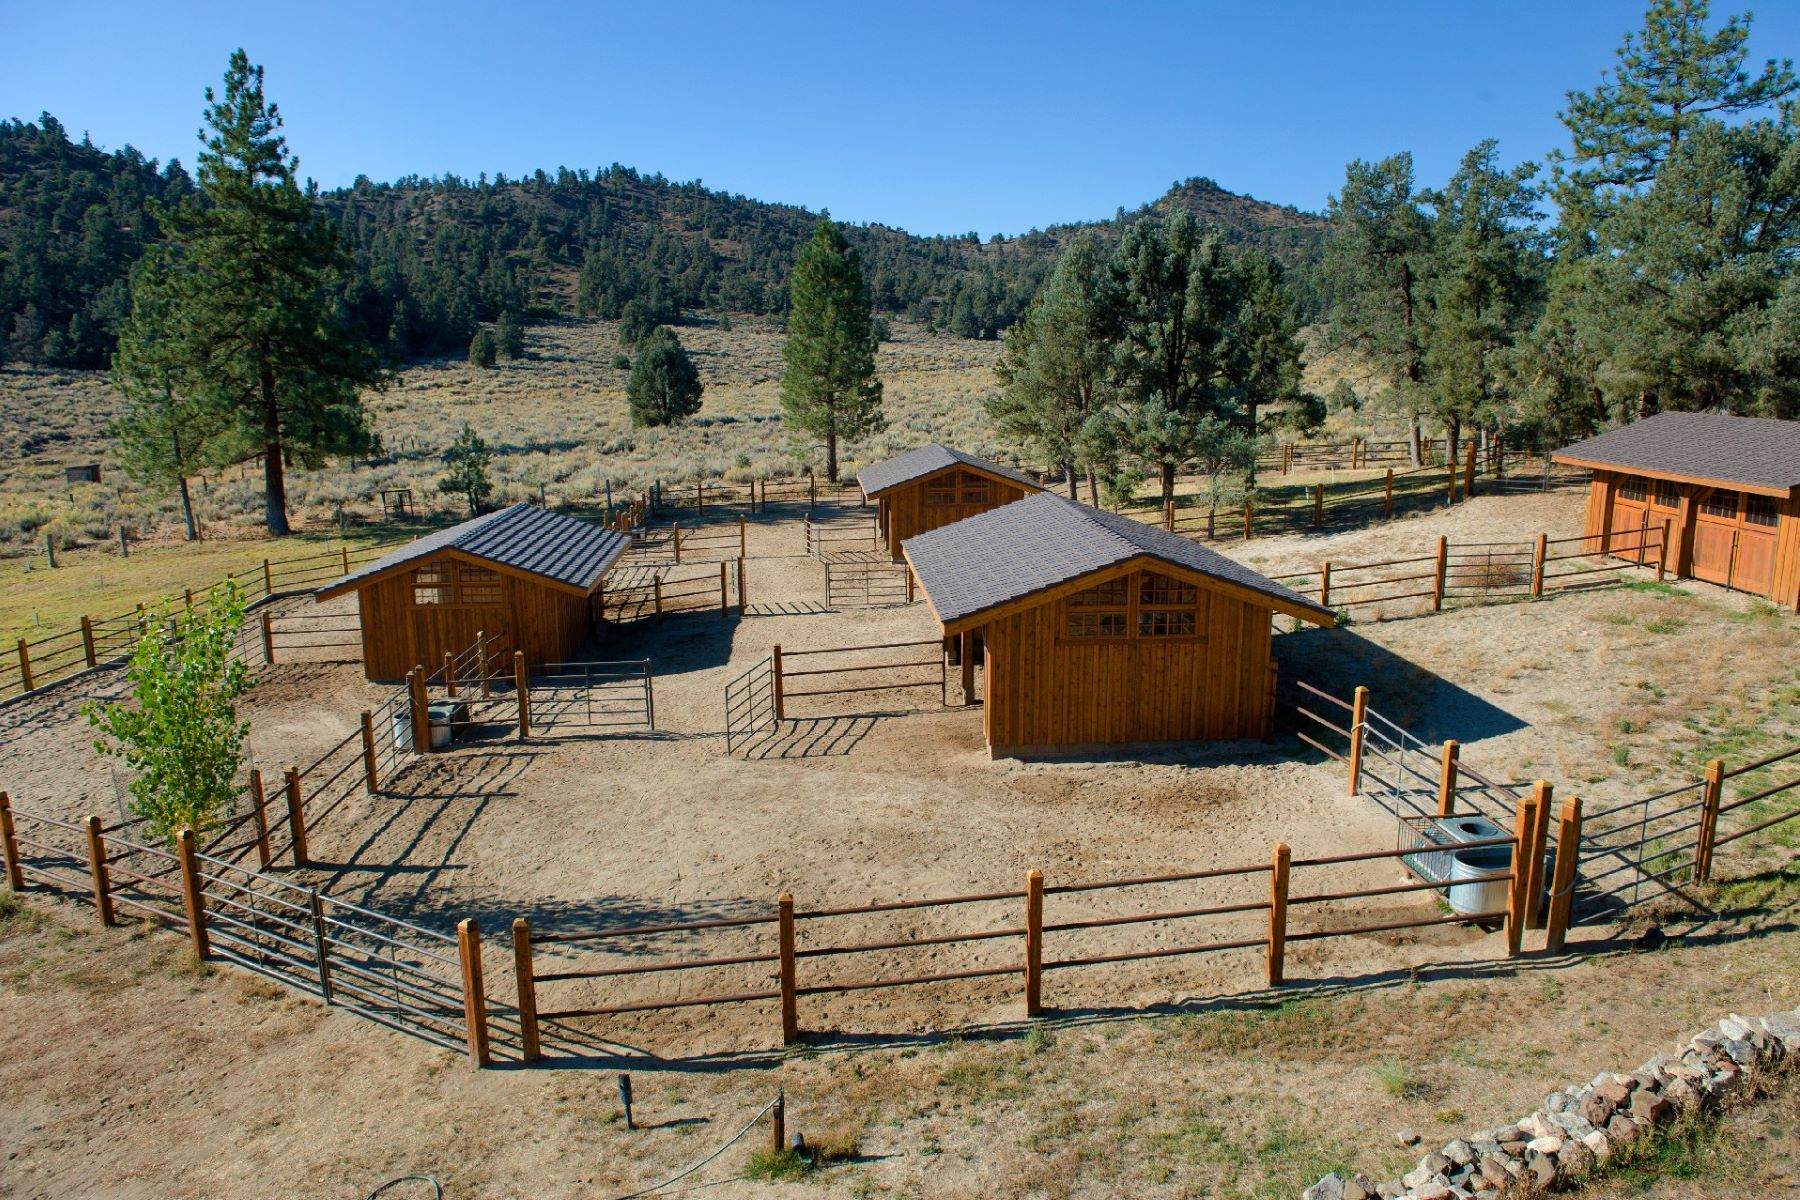 Additional photo for property listing at Spring Valley Ranch - Rare Mountain Valley Equestrian Property 33224 Seymour Canyon Road Lockwood, California 93225 United States